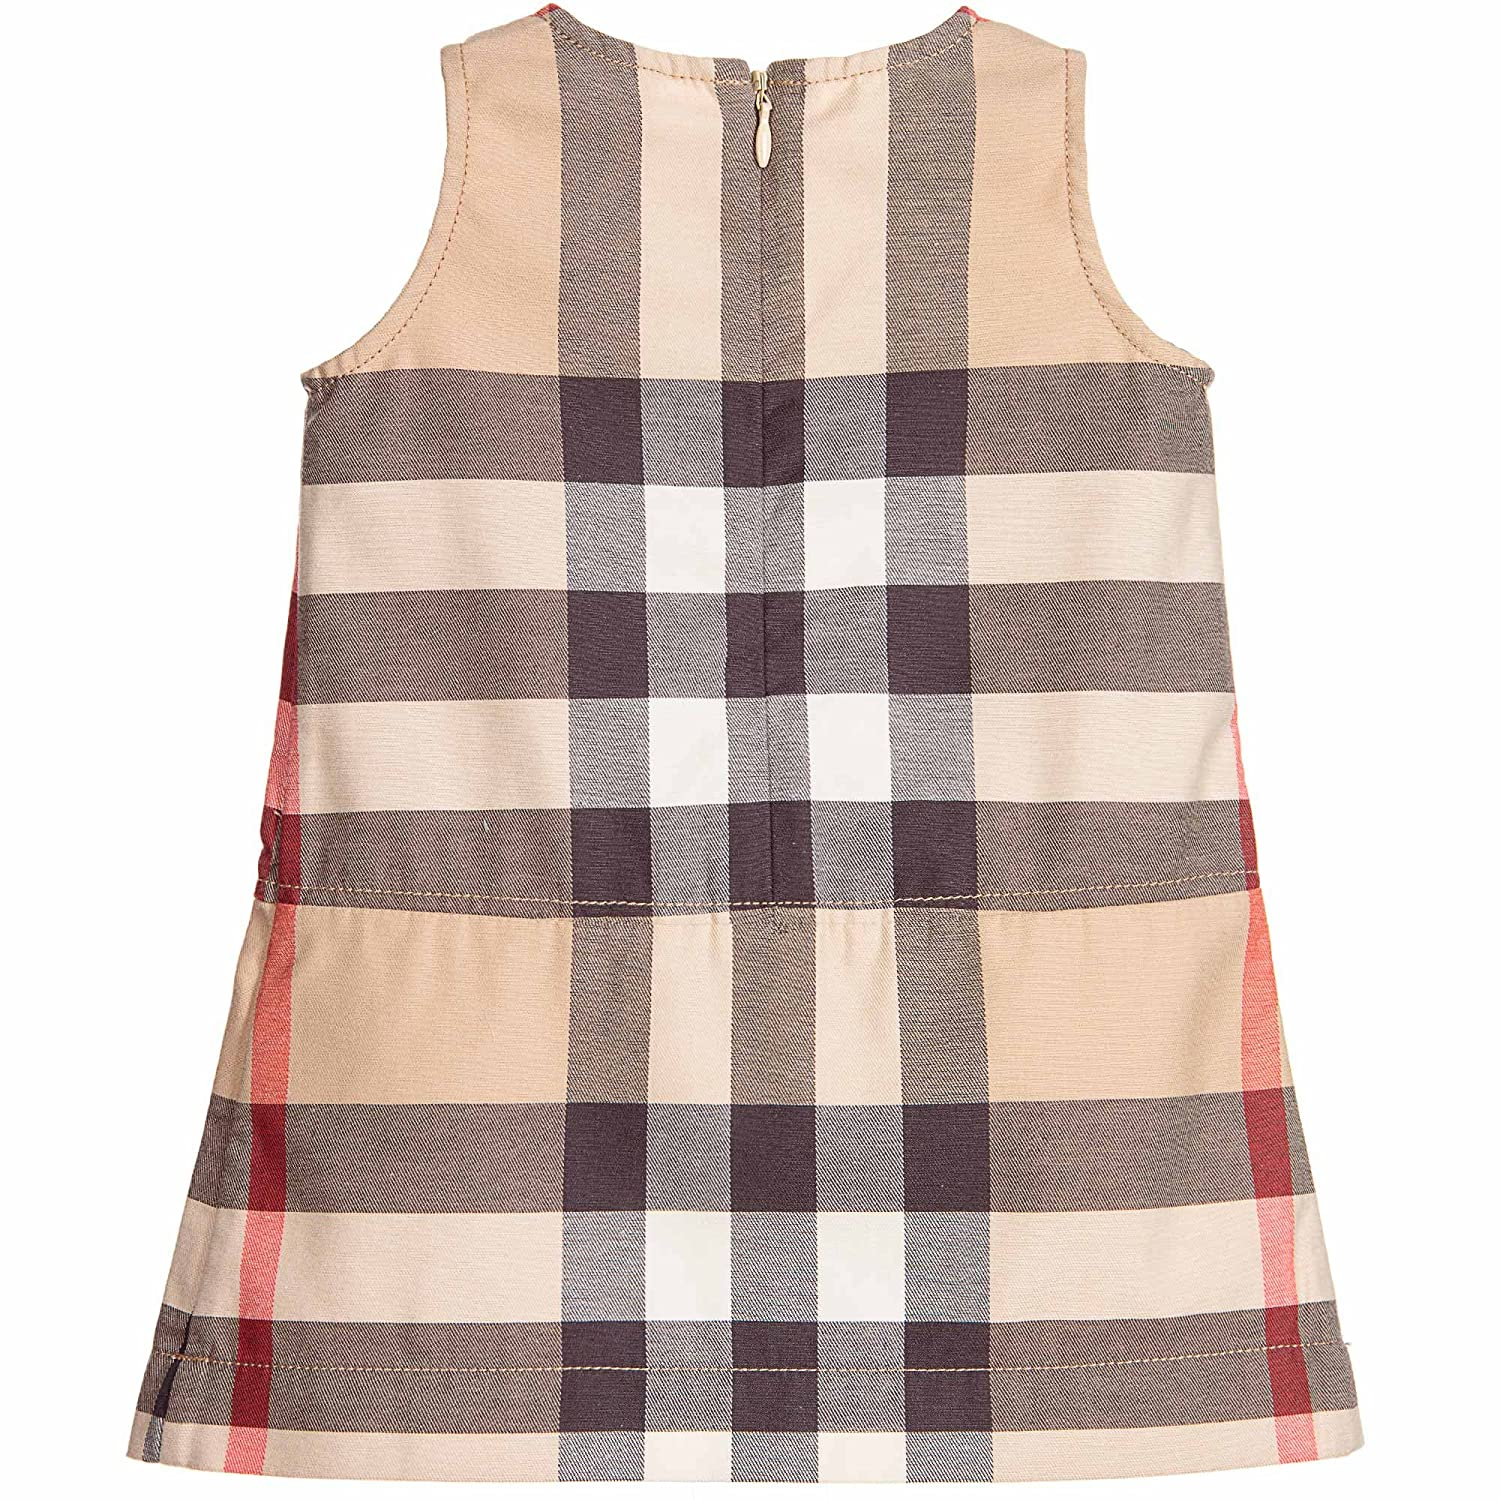 3823a006d8a8 BURBERRY Girls' Dress - Beige - 6 Years: Amazon.co.uk: Clothing